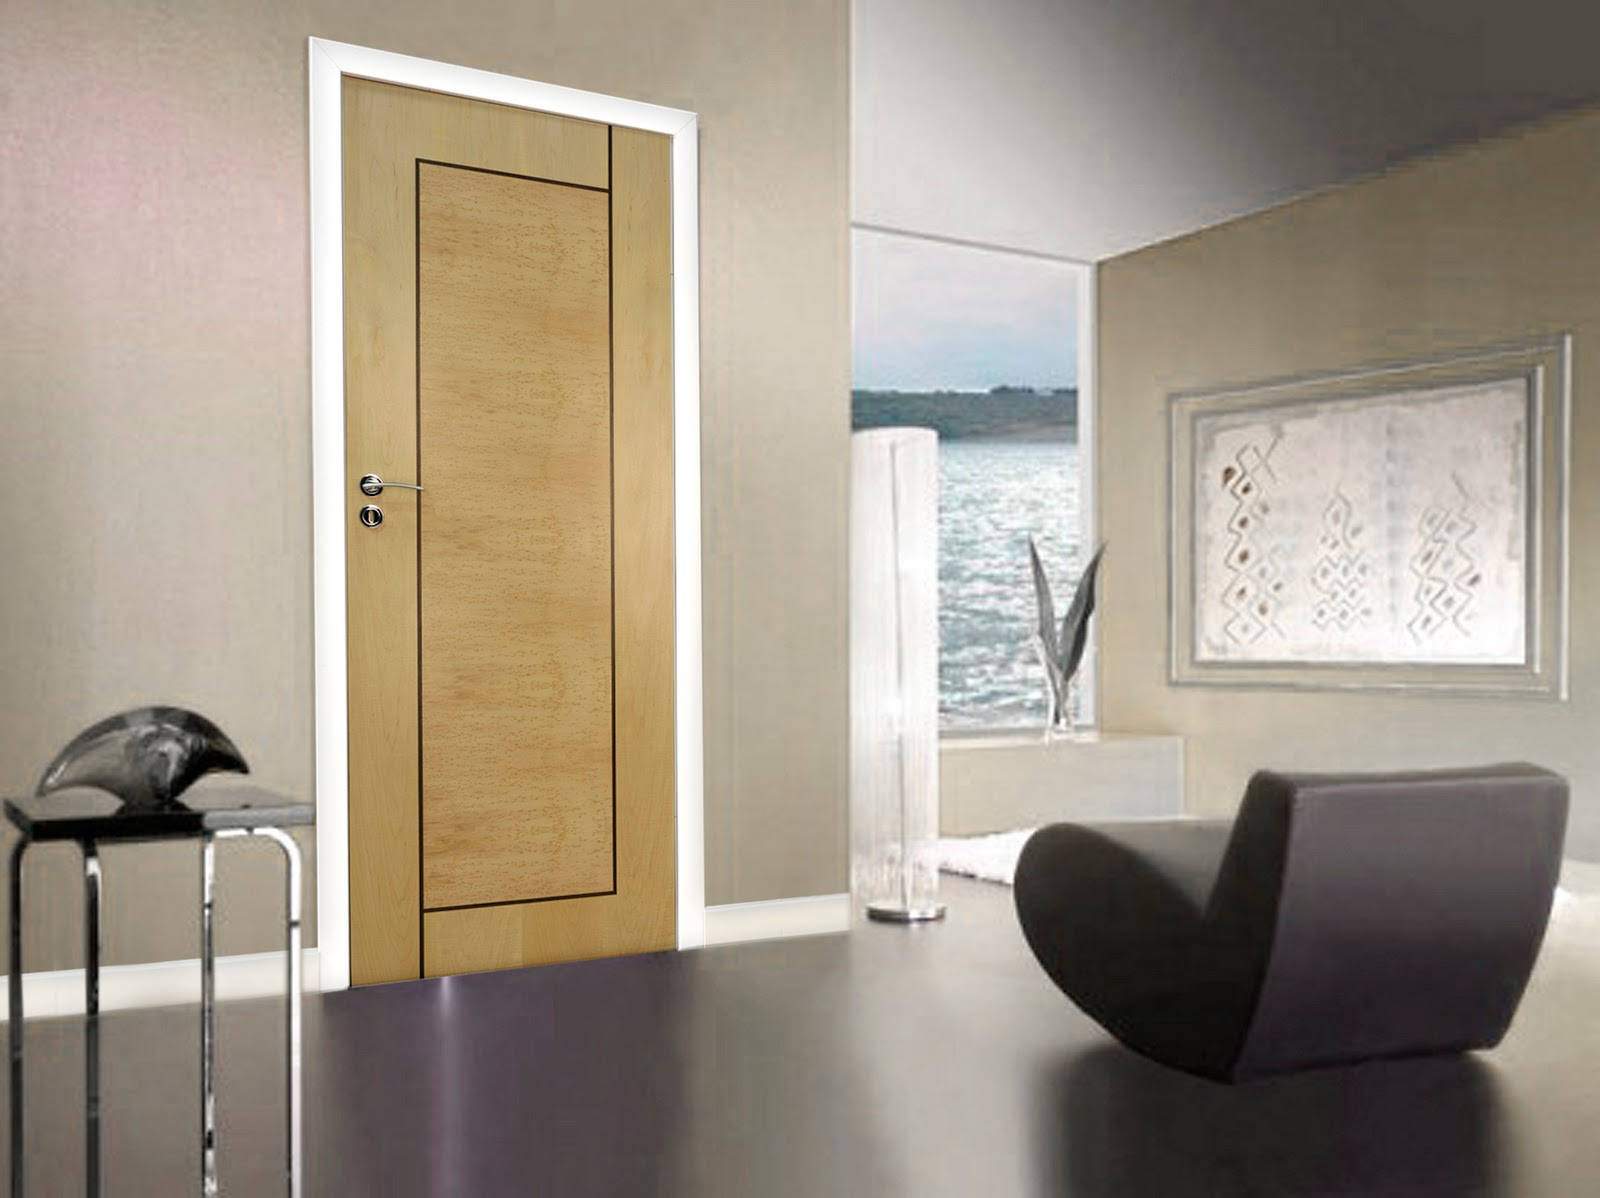 Mark 1 photography designer doors and modern interiors for Modern interior doors